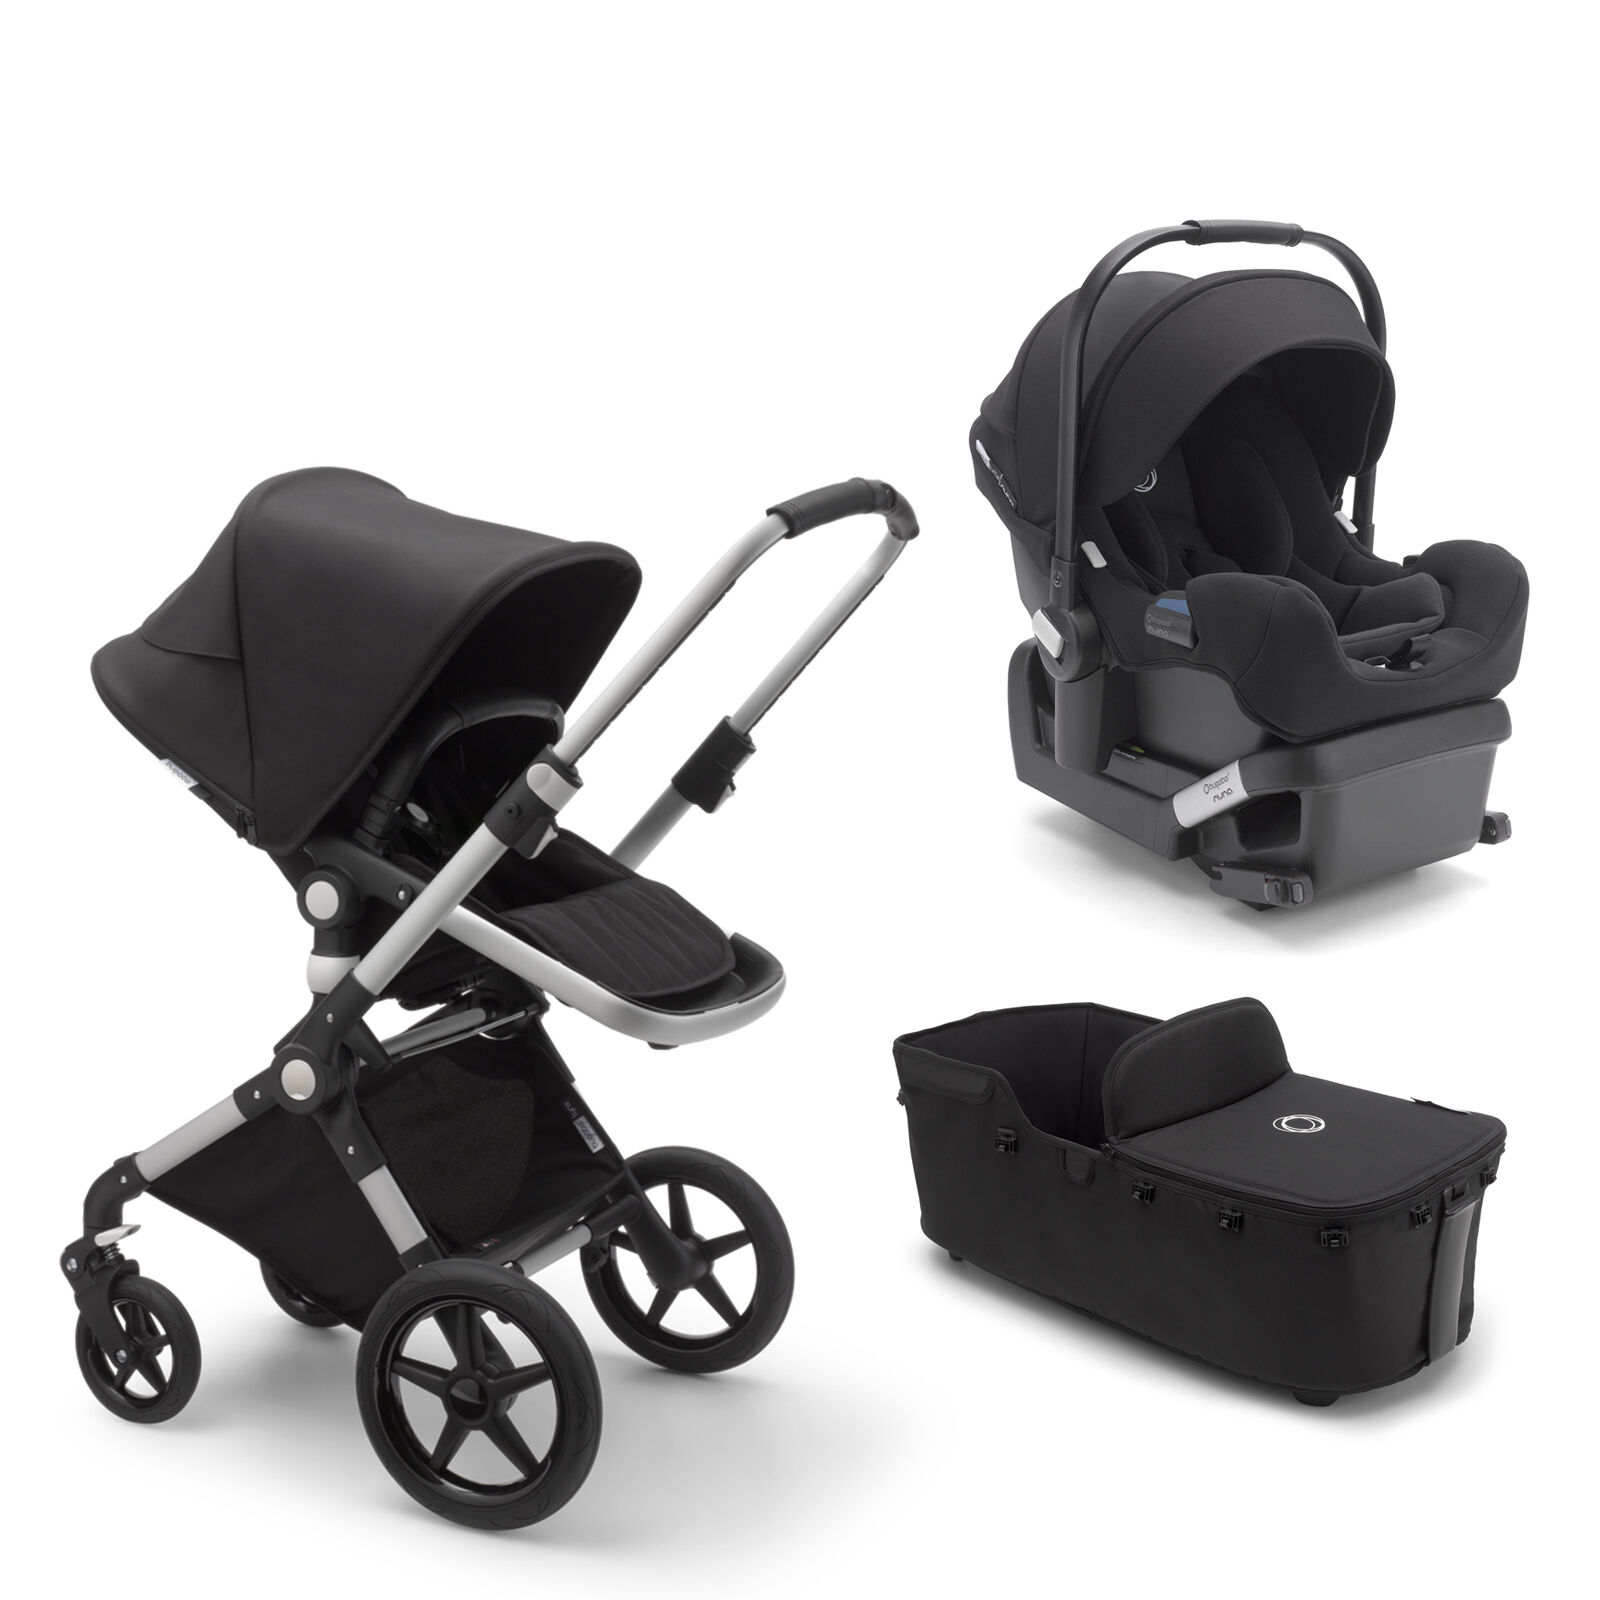 Bugaboo Lynx, Lynx bassinet and Turtle by Nuna